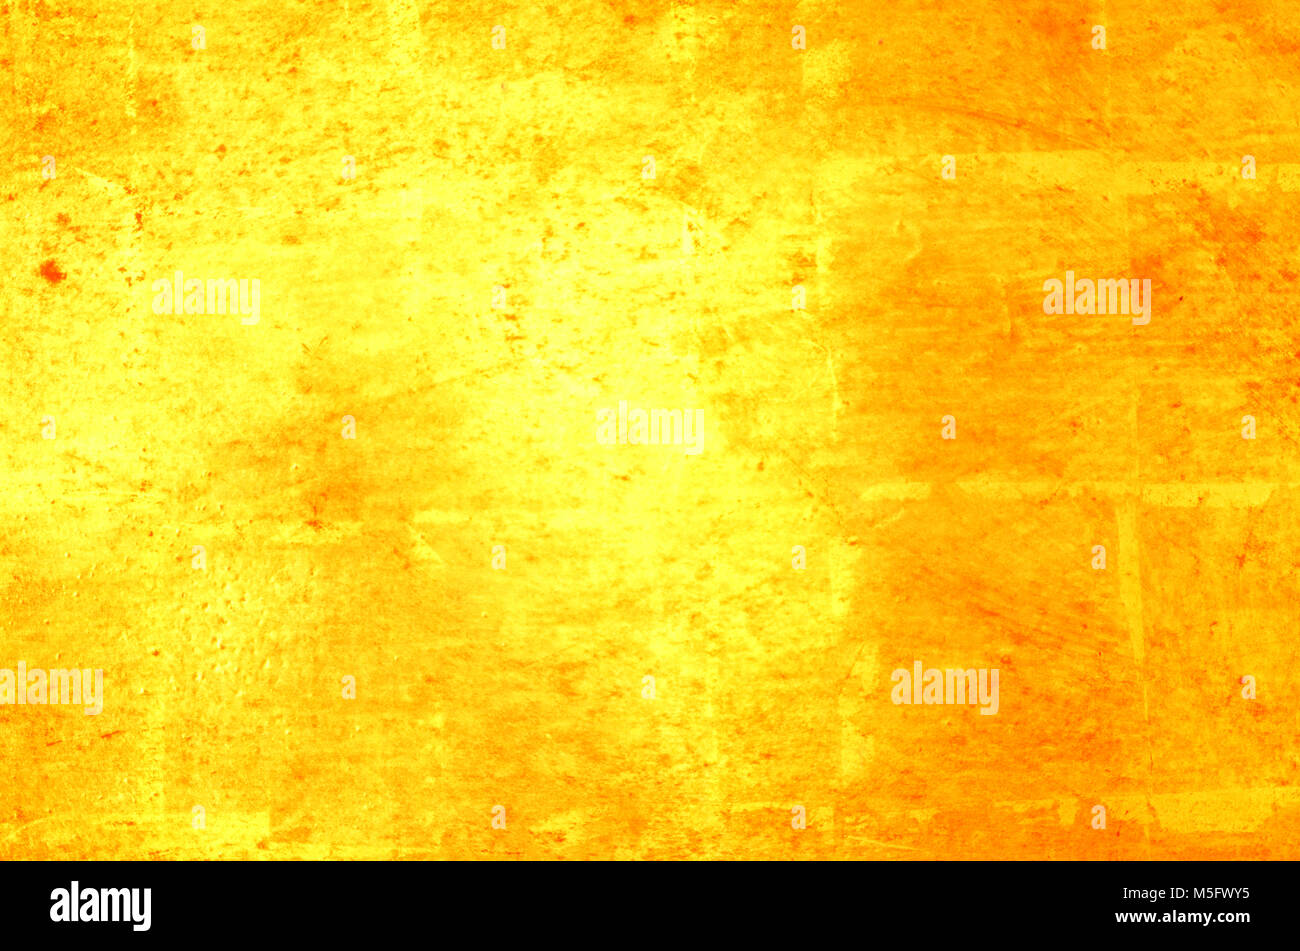 Blur abstract photo image of bright gold color light reflect from a ...